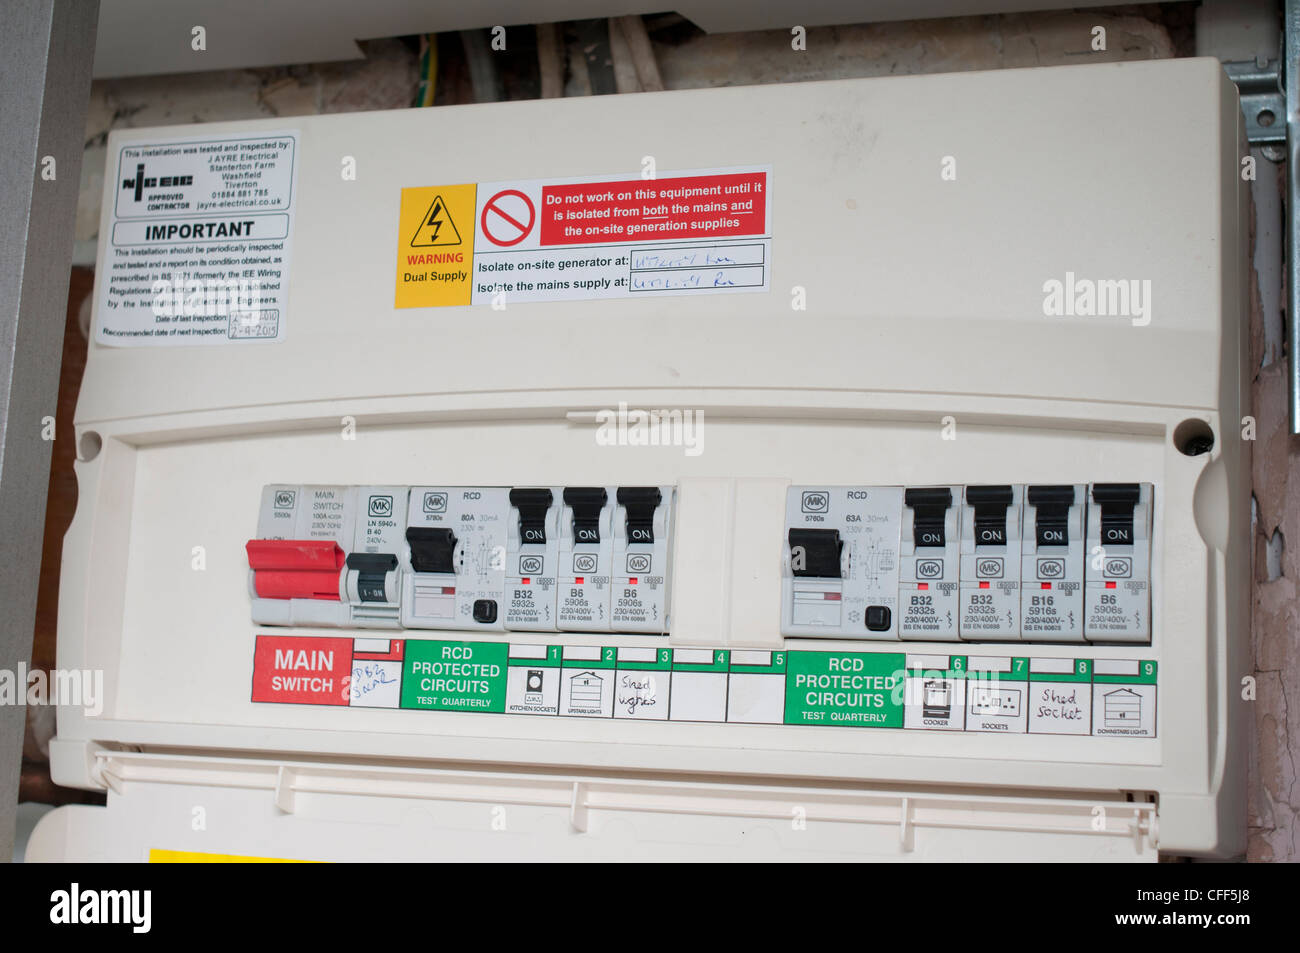 domestic fuse box CFF5J8 fuse box house stock photos & fuse box house stock images alamy home fuse box at bayanpartner.co